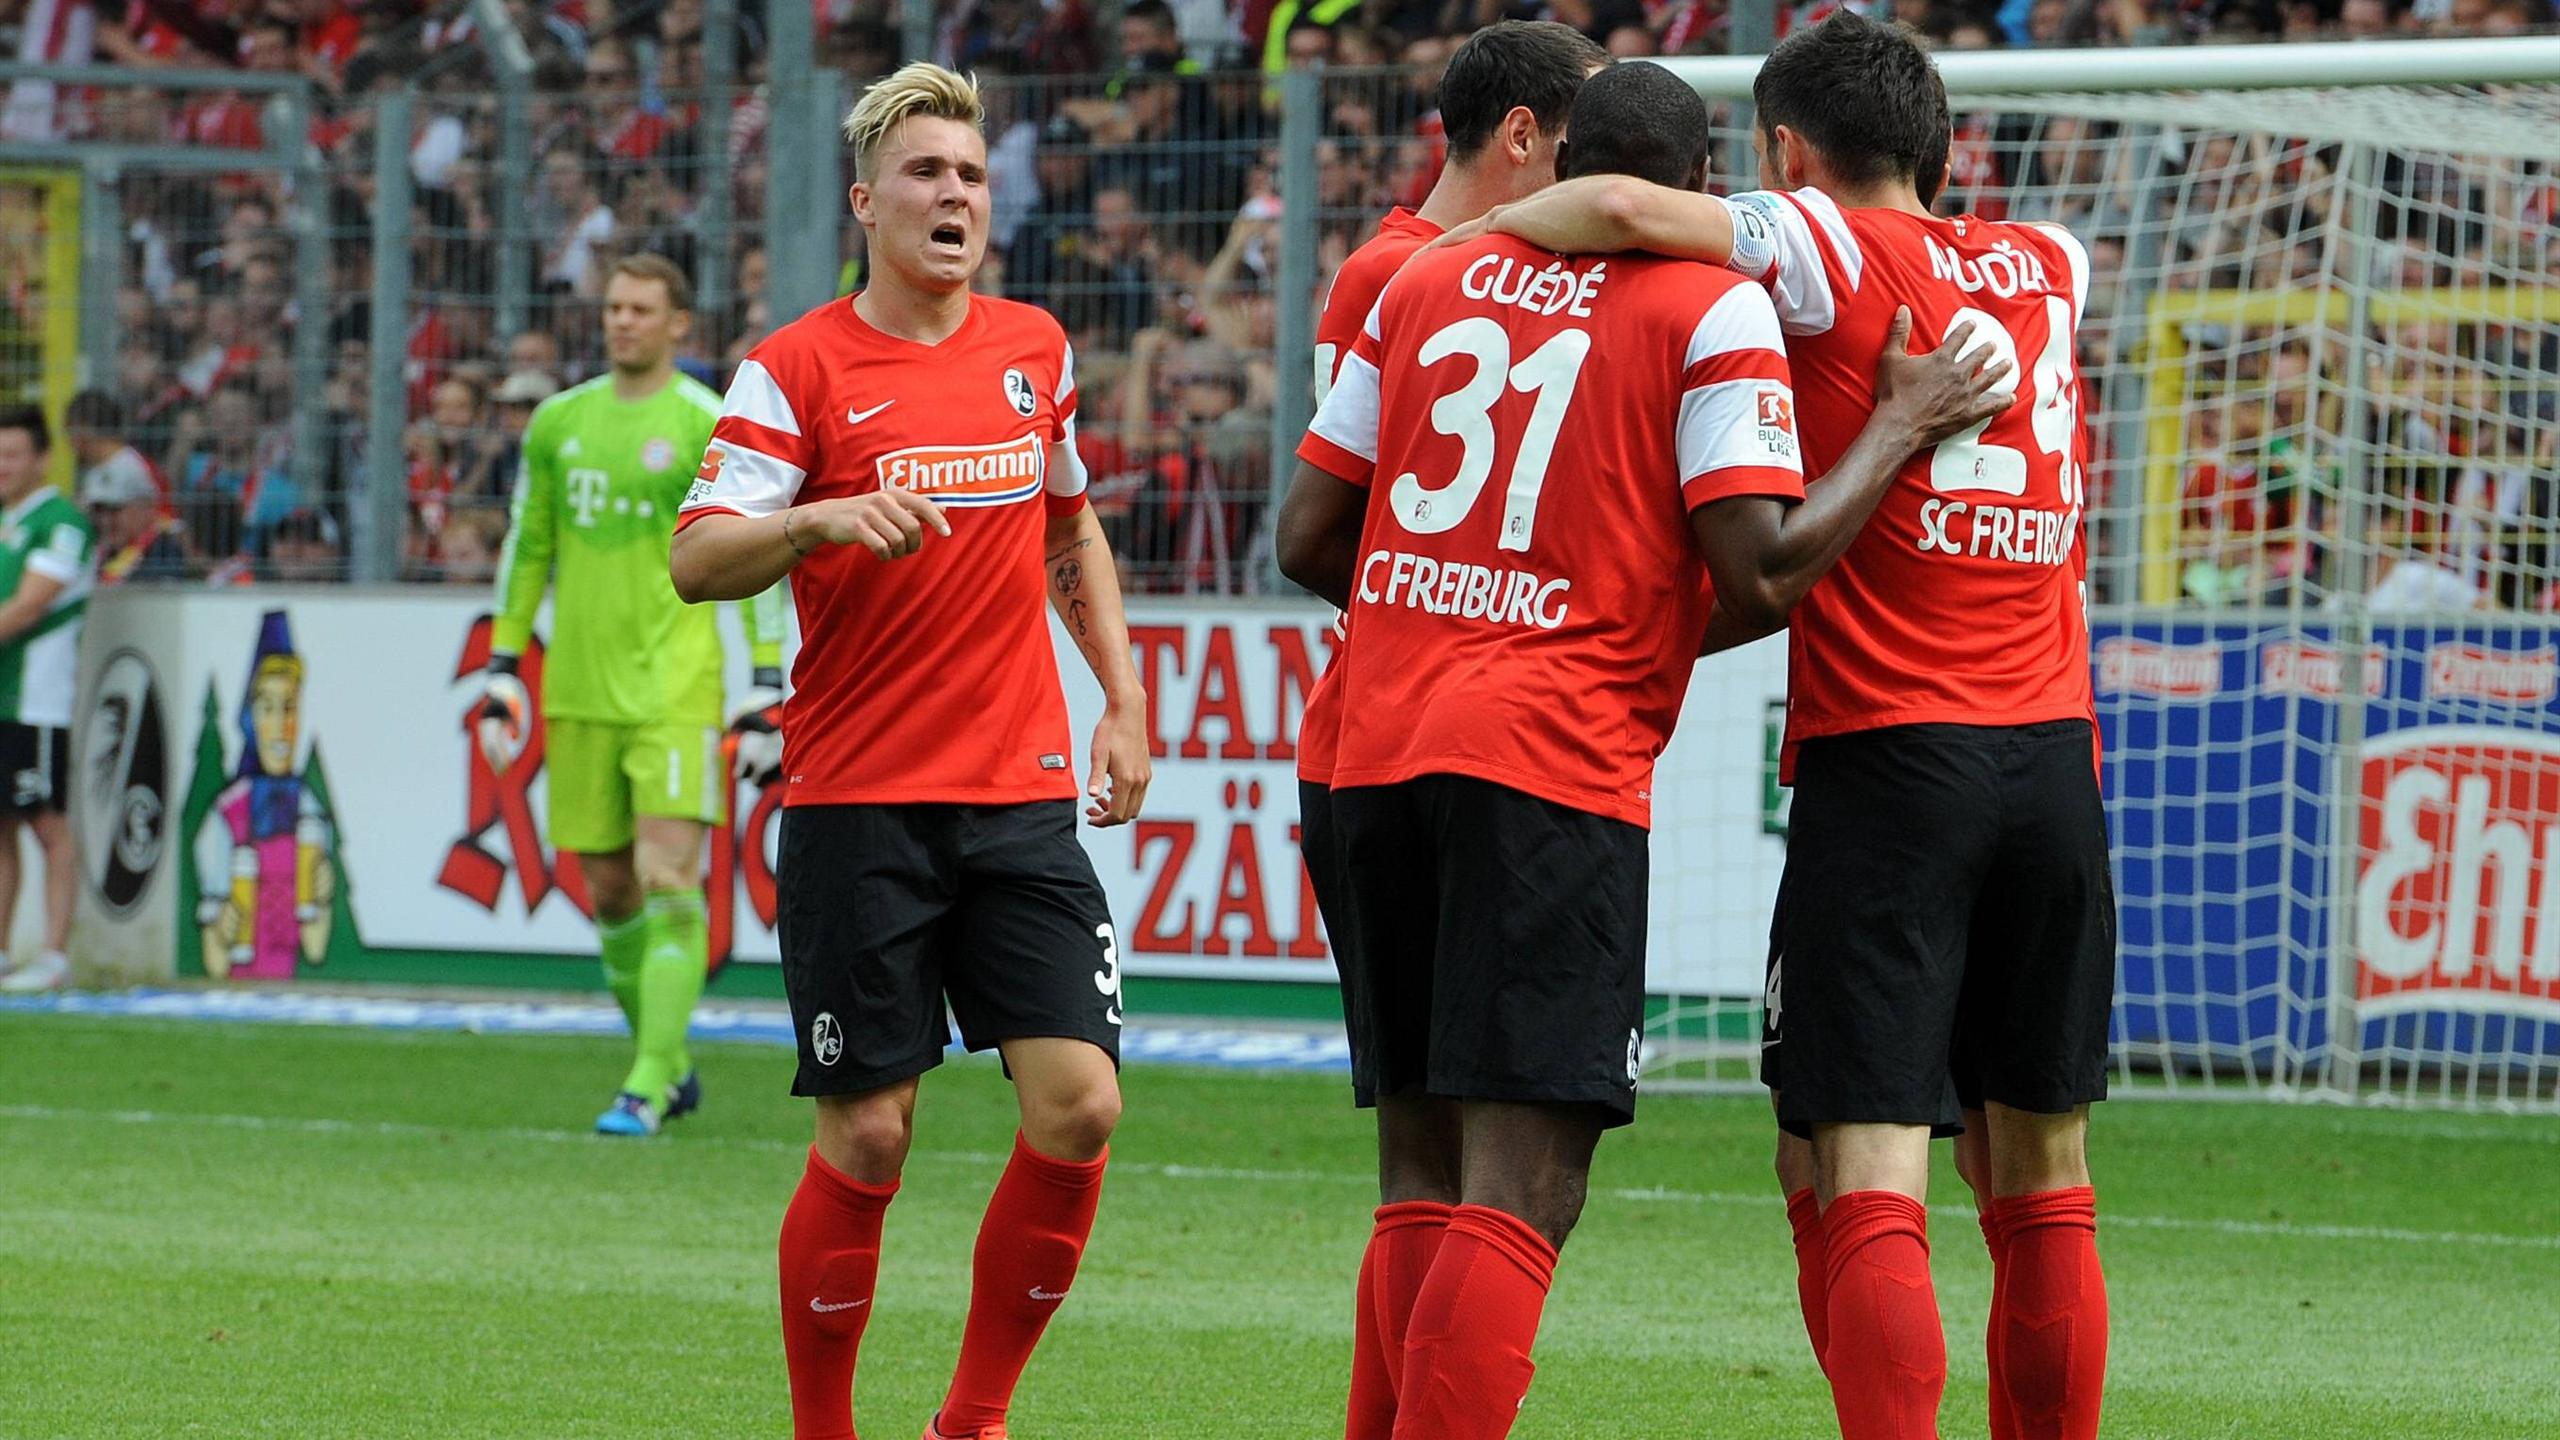 Video: Freiburg vs Bayern Munich